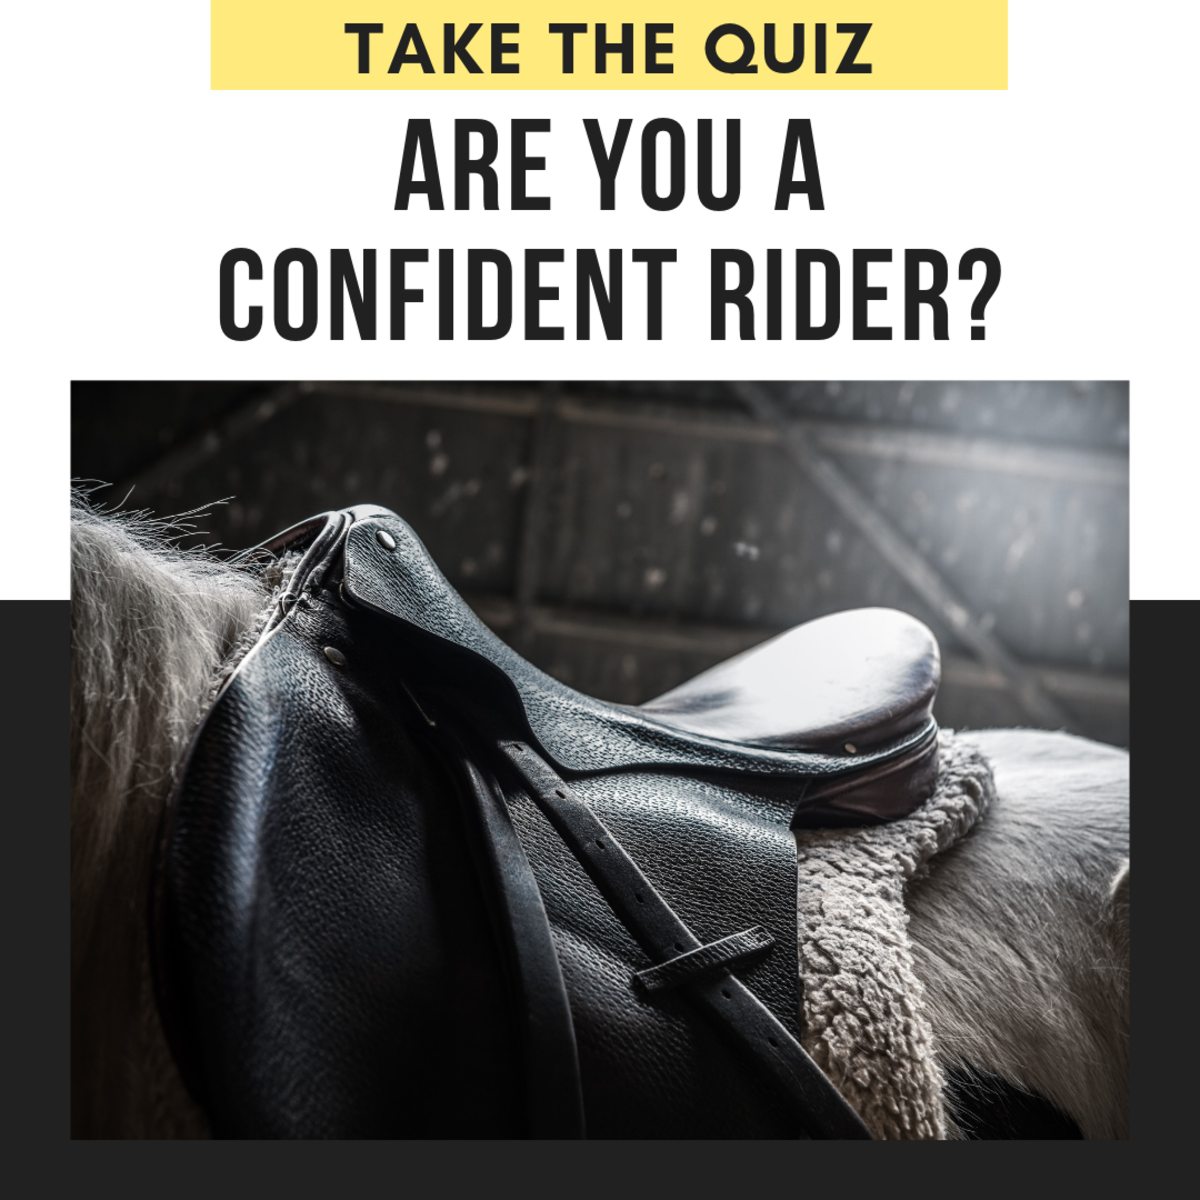 How Confident of a Rider Are You?